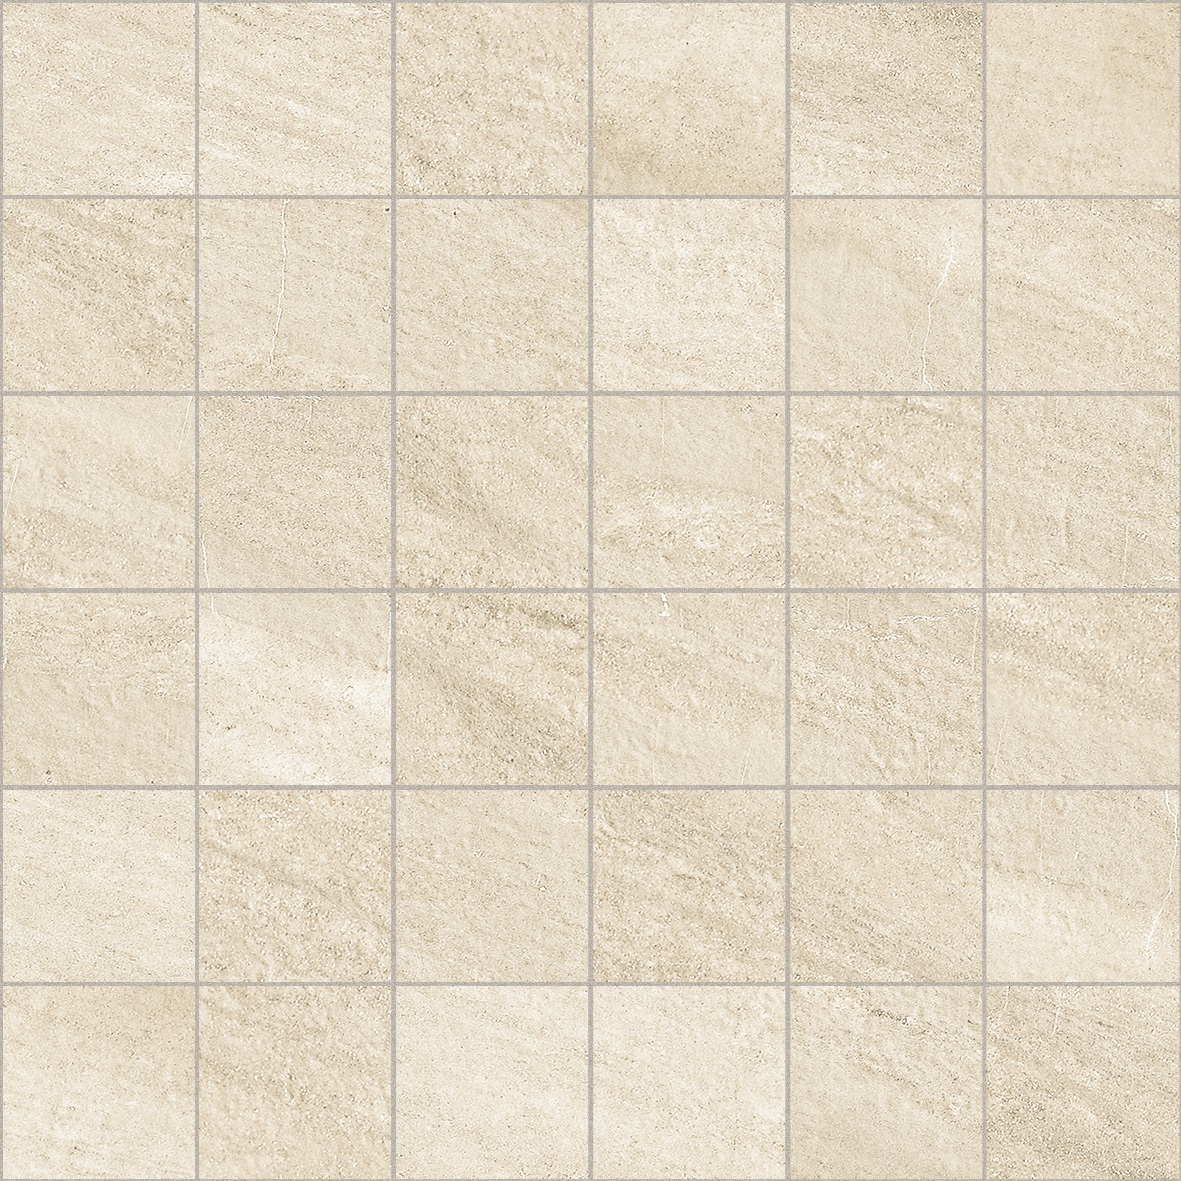 Floor Tiles Collection FC238 River Beige 300mm x 300mm Malla Mosaic